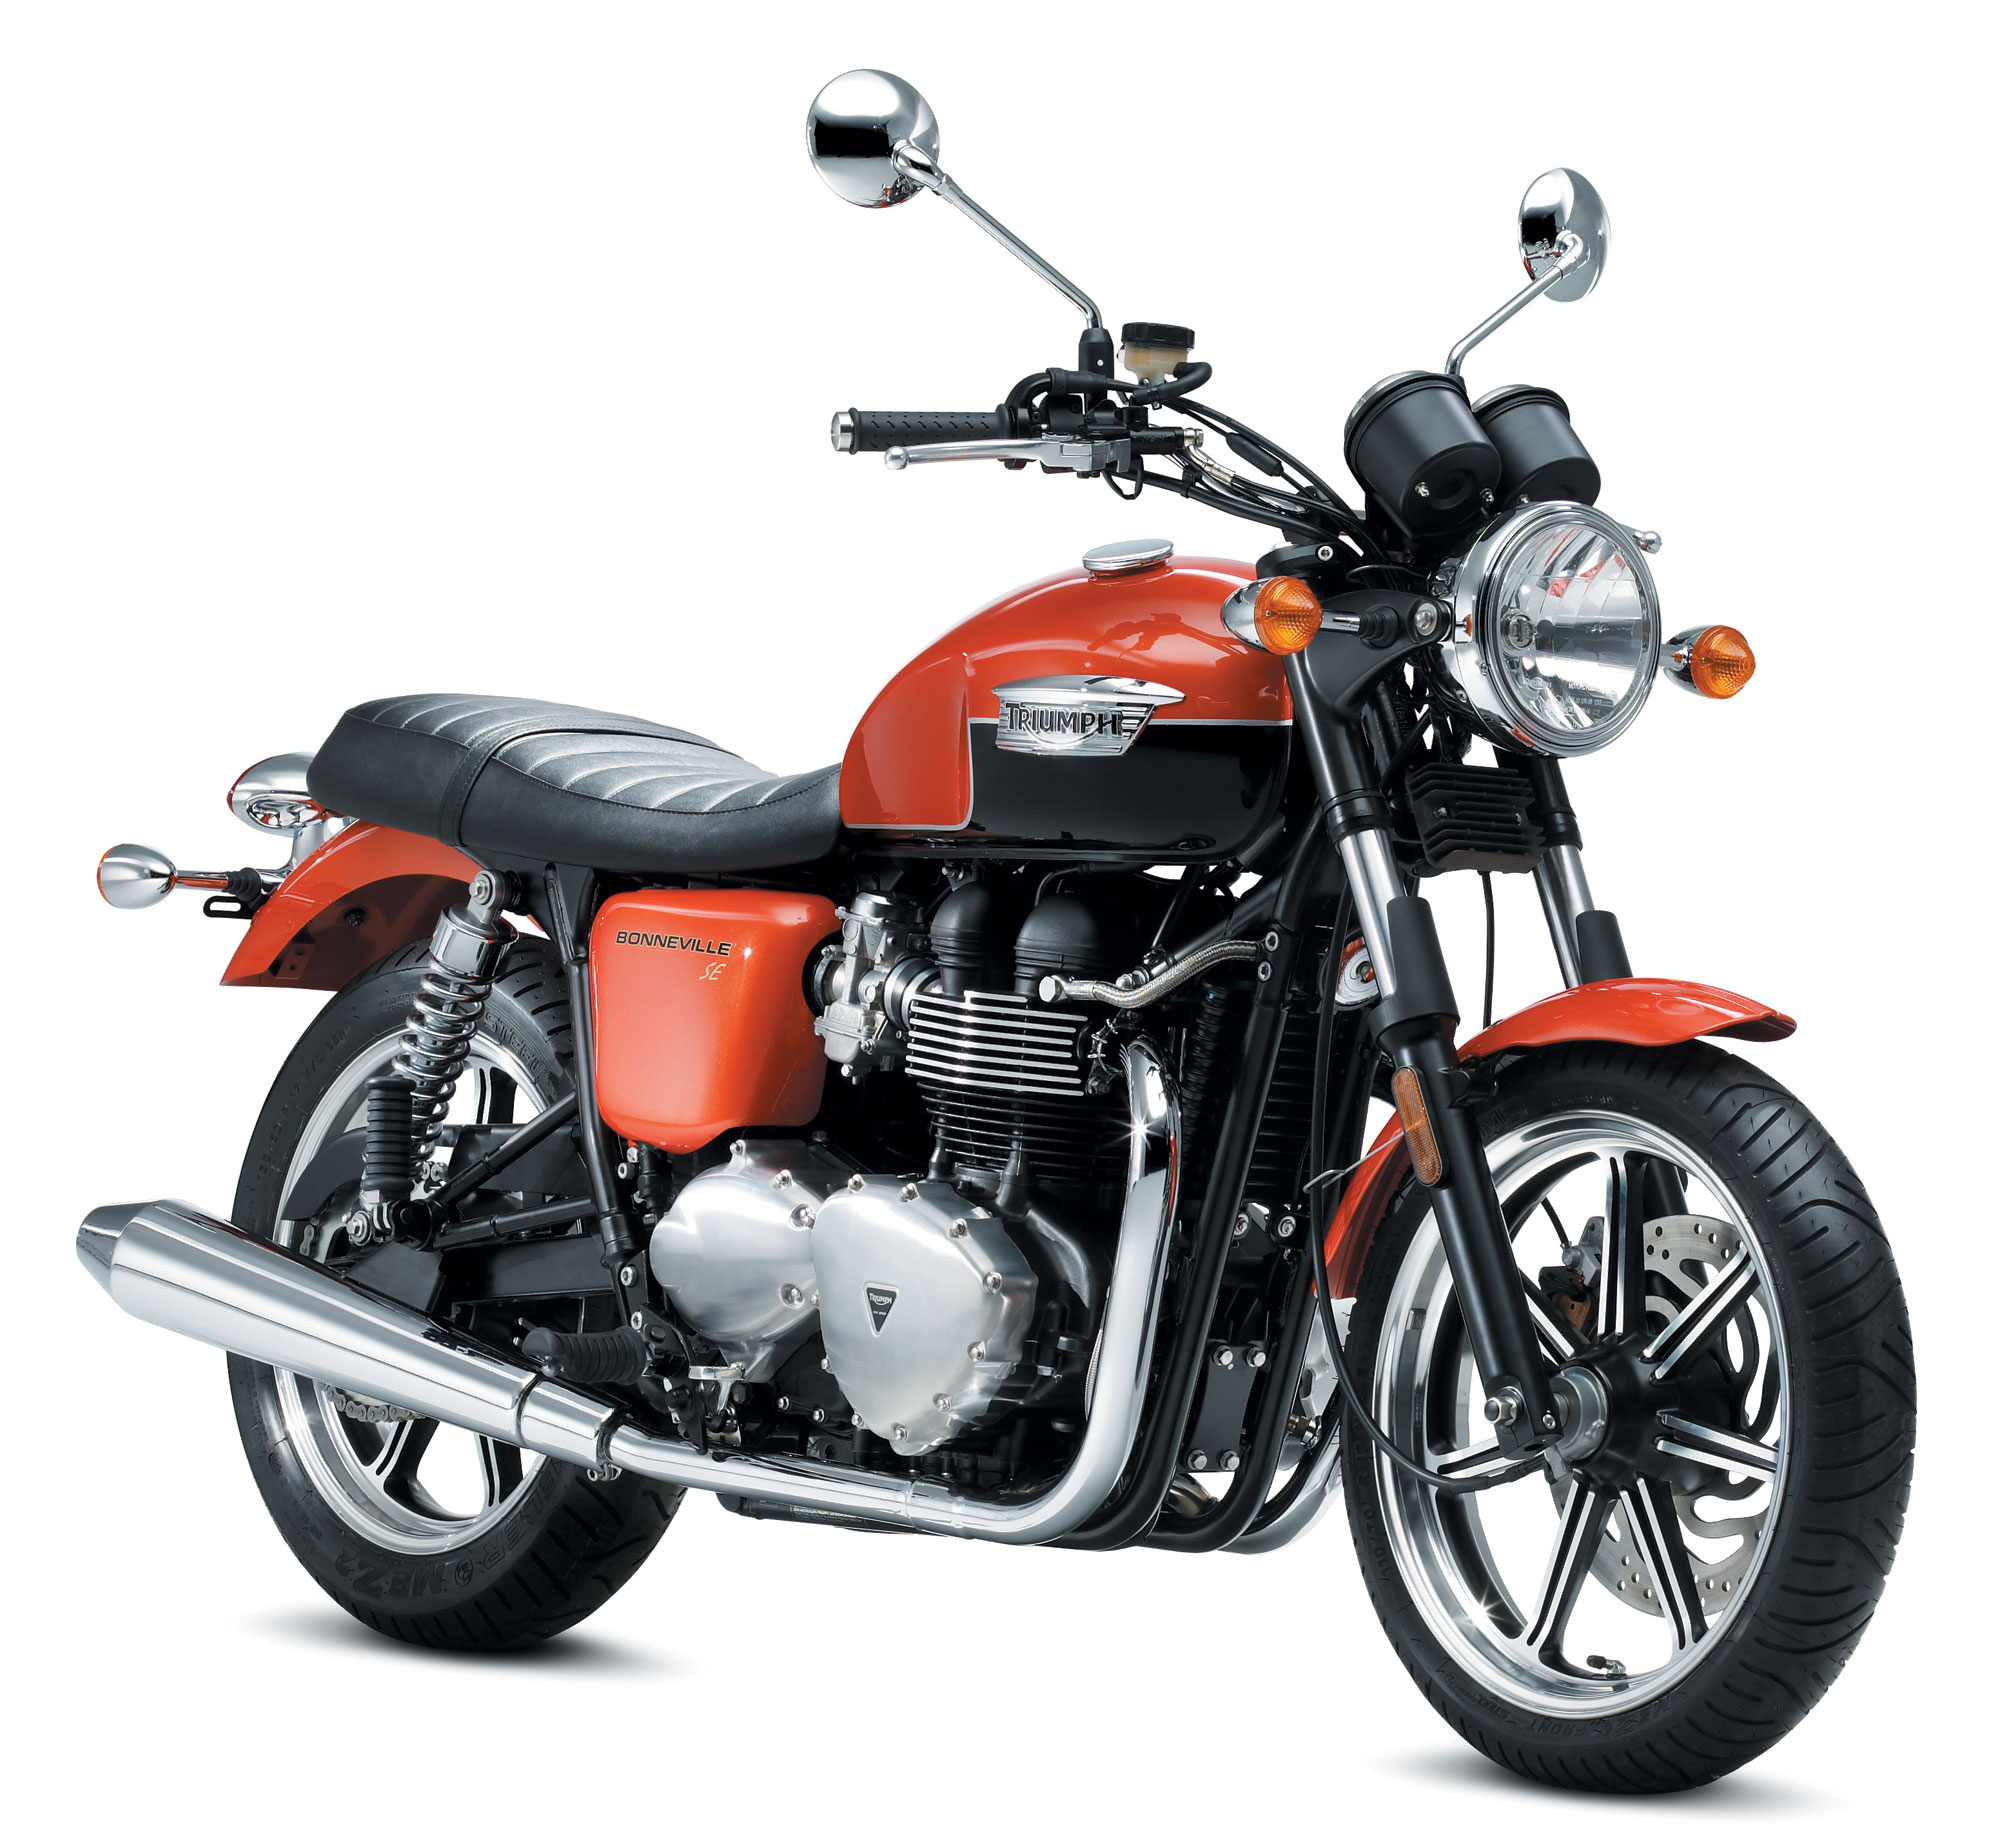 2013 Triumph Bonneville SE | Top Speed